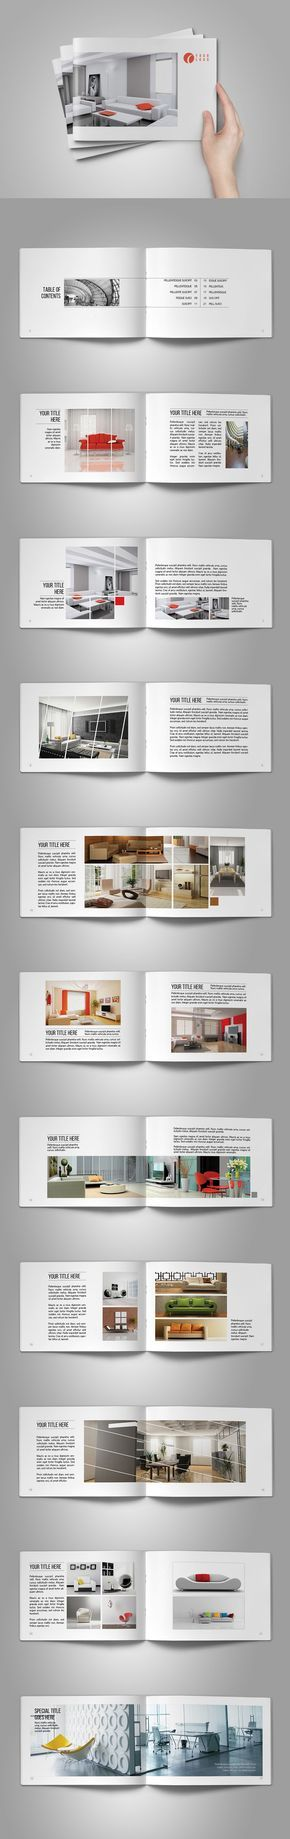 Interior Design Brochure Template InDesign INDD - 24 Pages, A5 - interior design brochure template